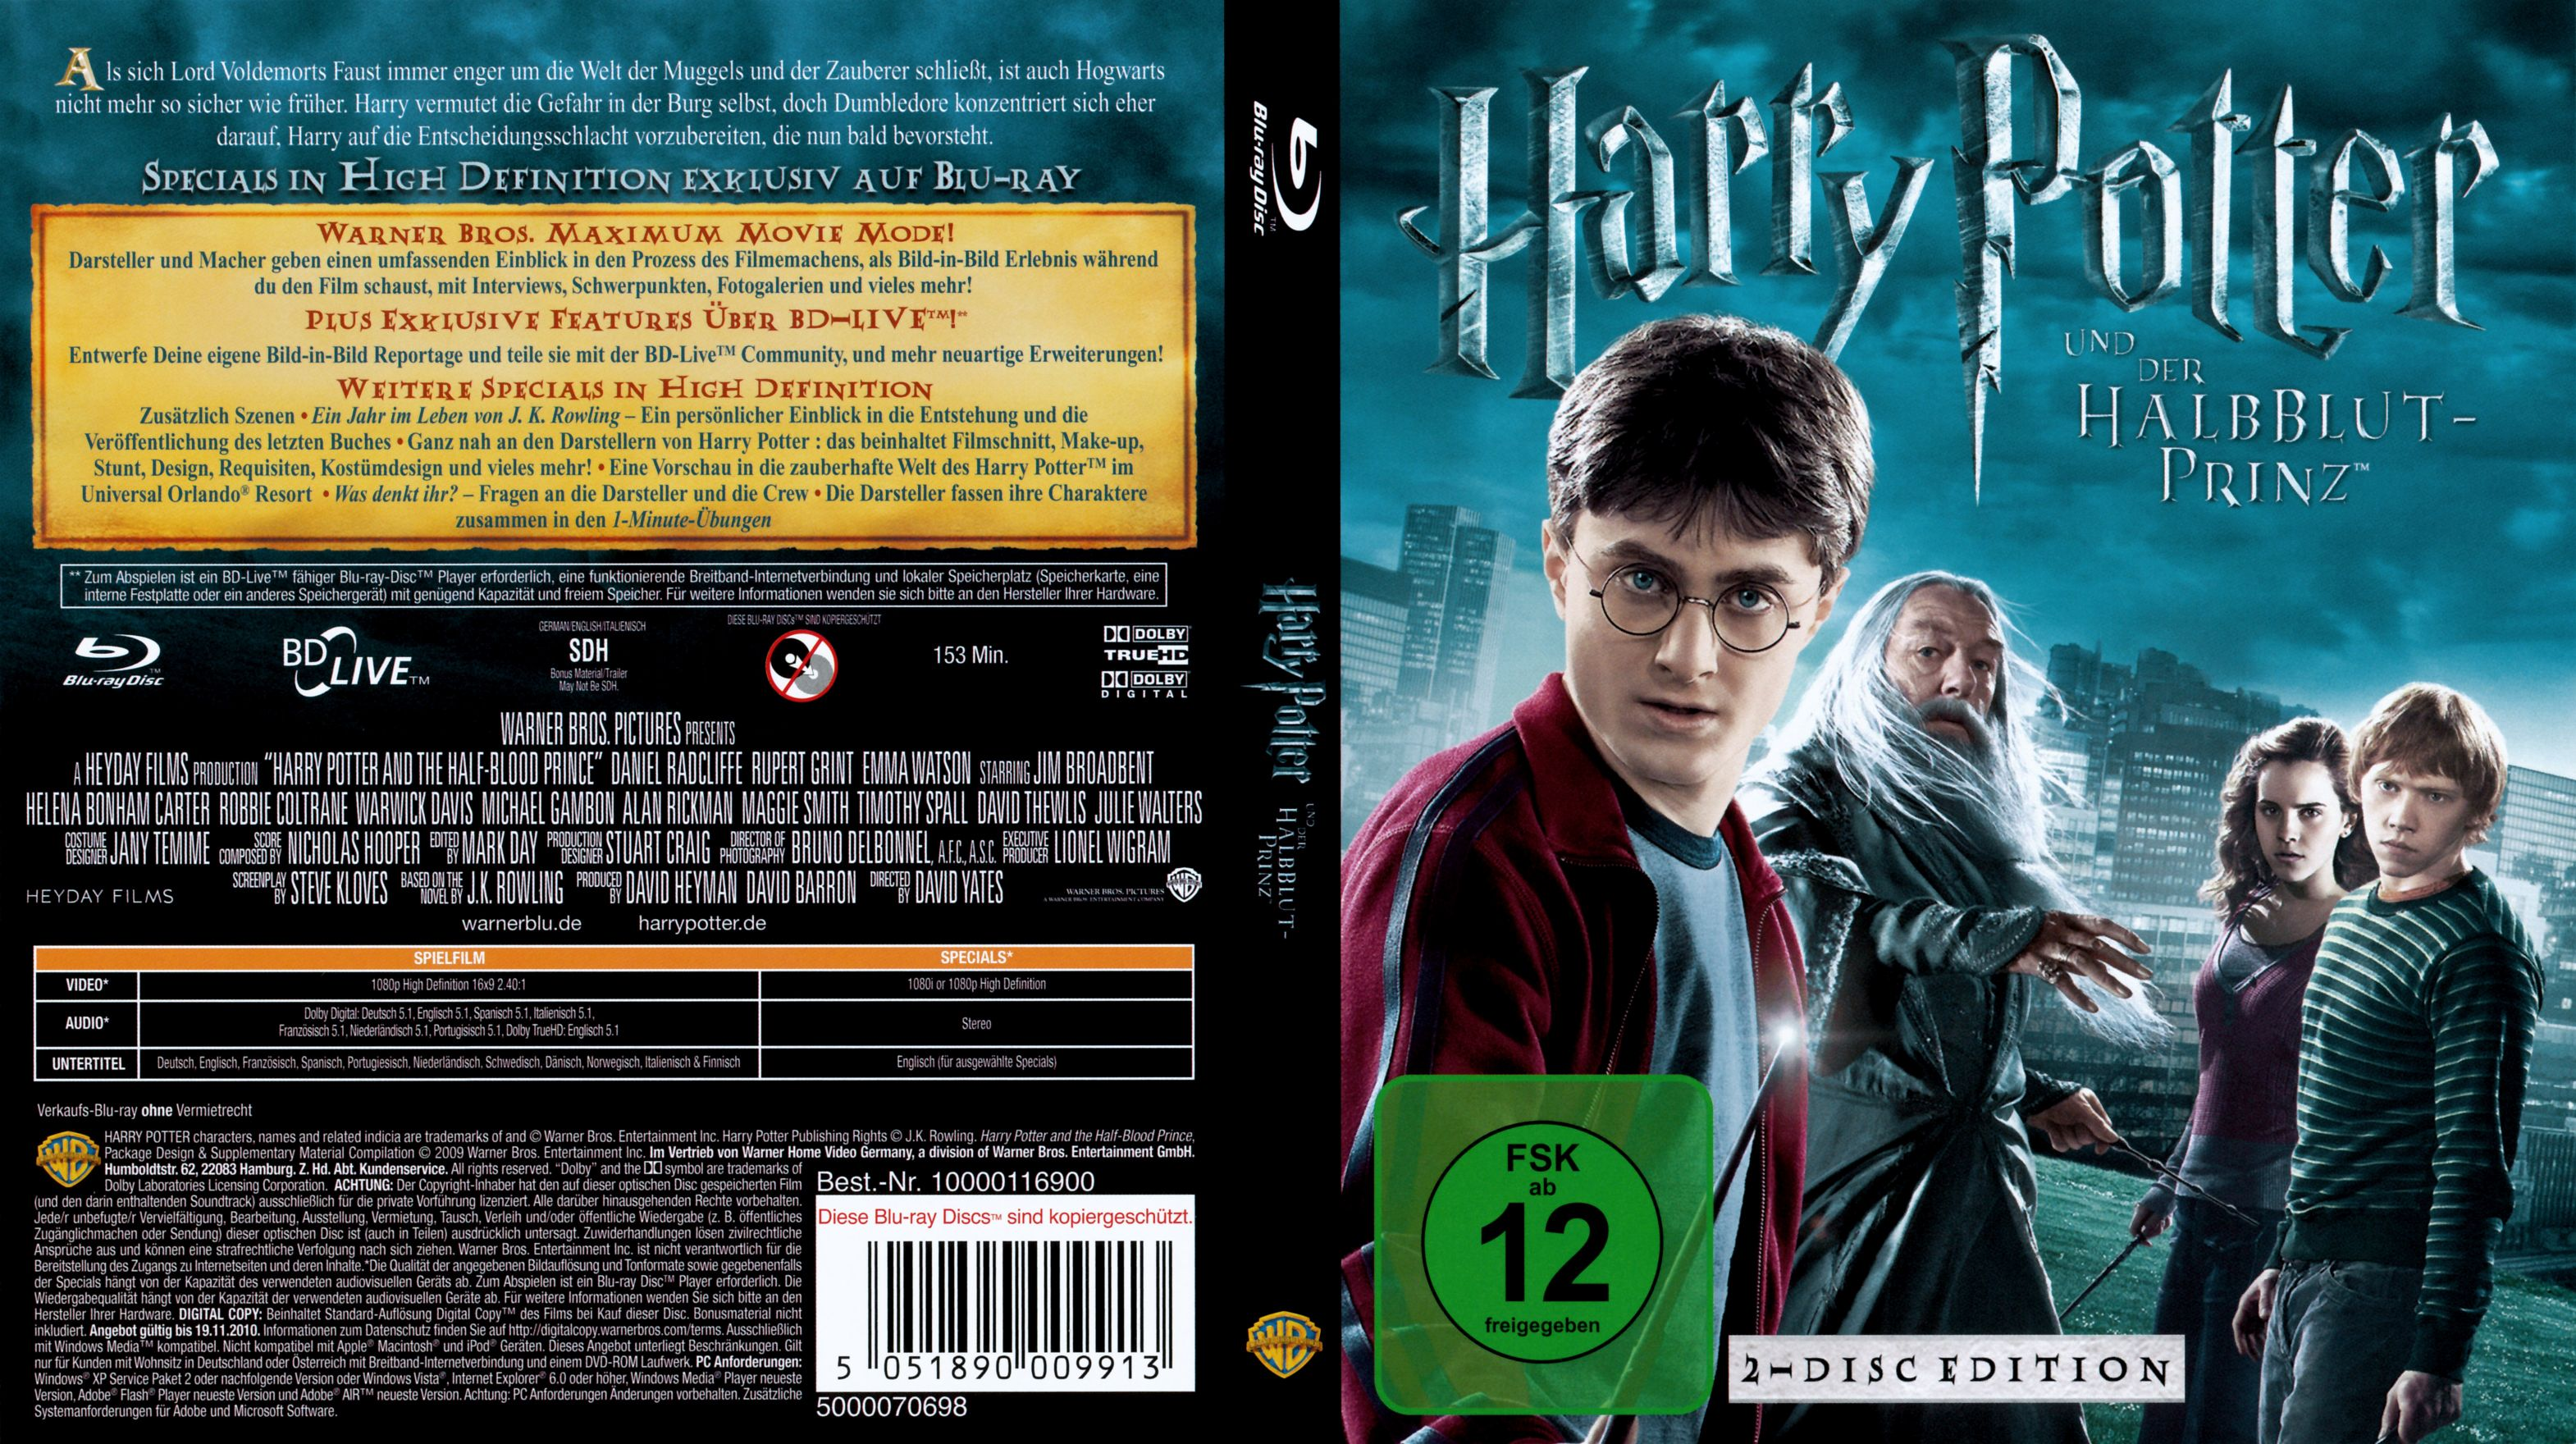 Harry Potter 6 Dvd Covers Cover Century Over 500 000 Album Art Covers For Free